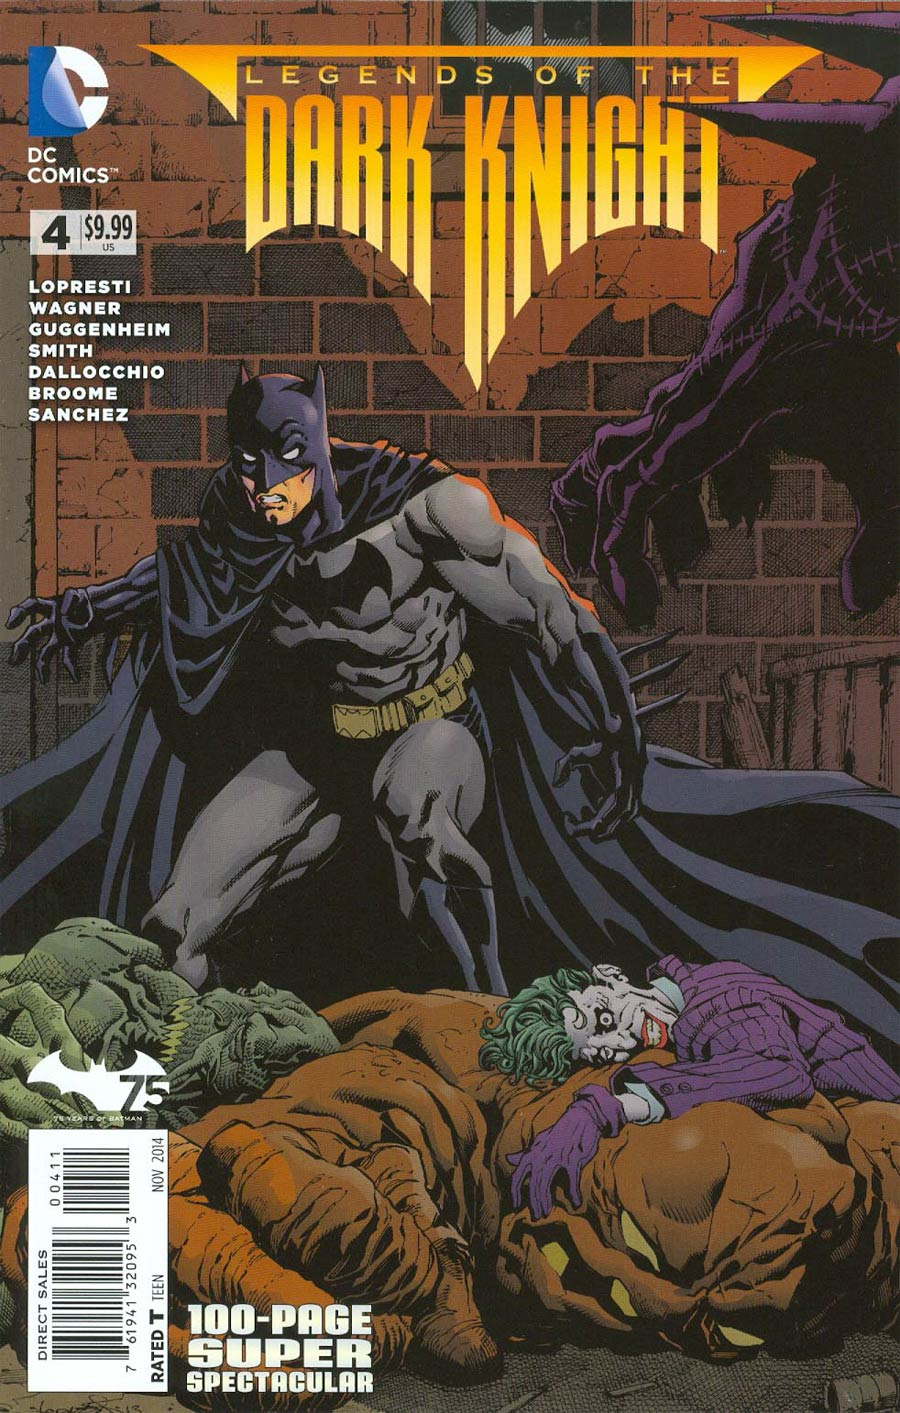 Legends Of The Dark Knight 100-Page Super Spectacular #4